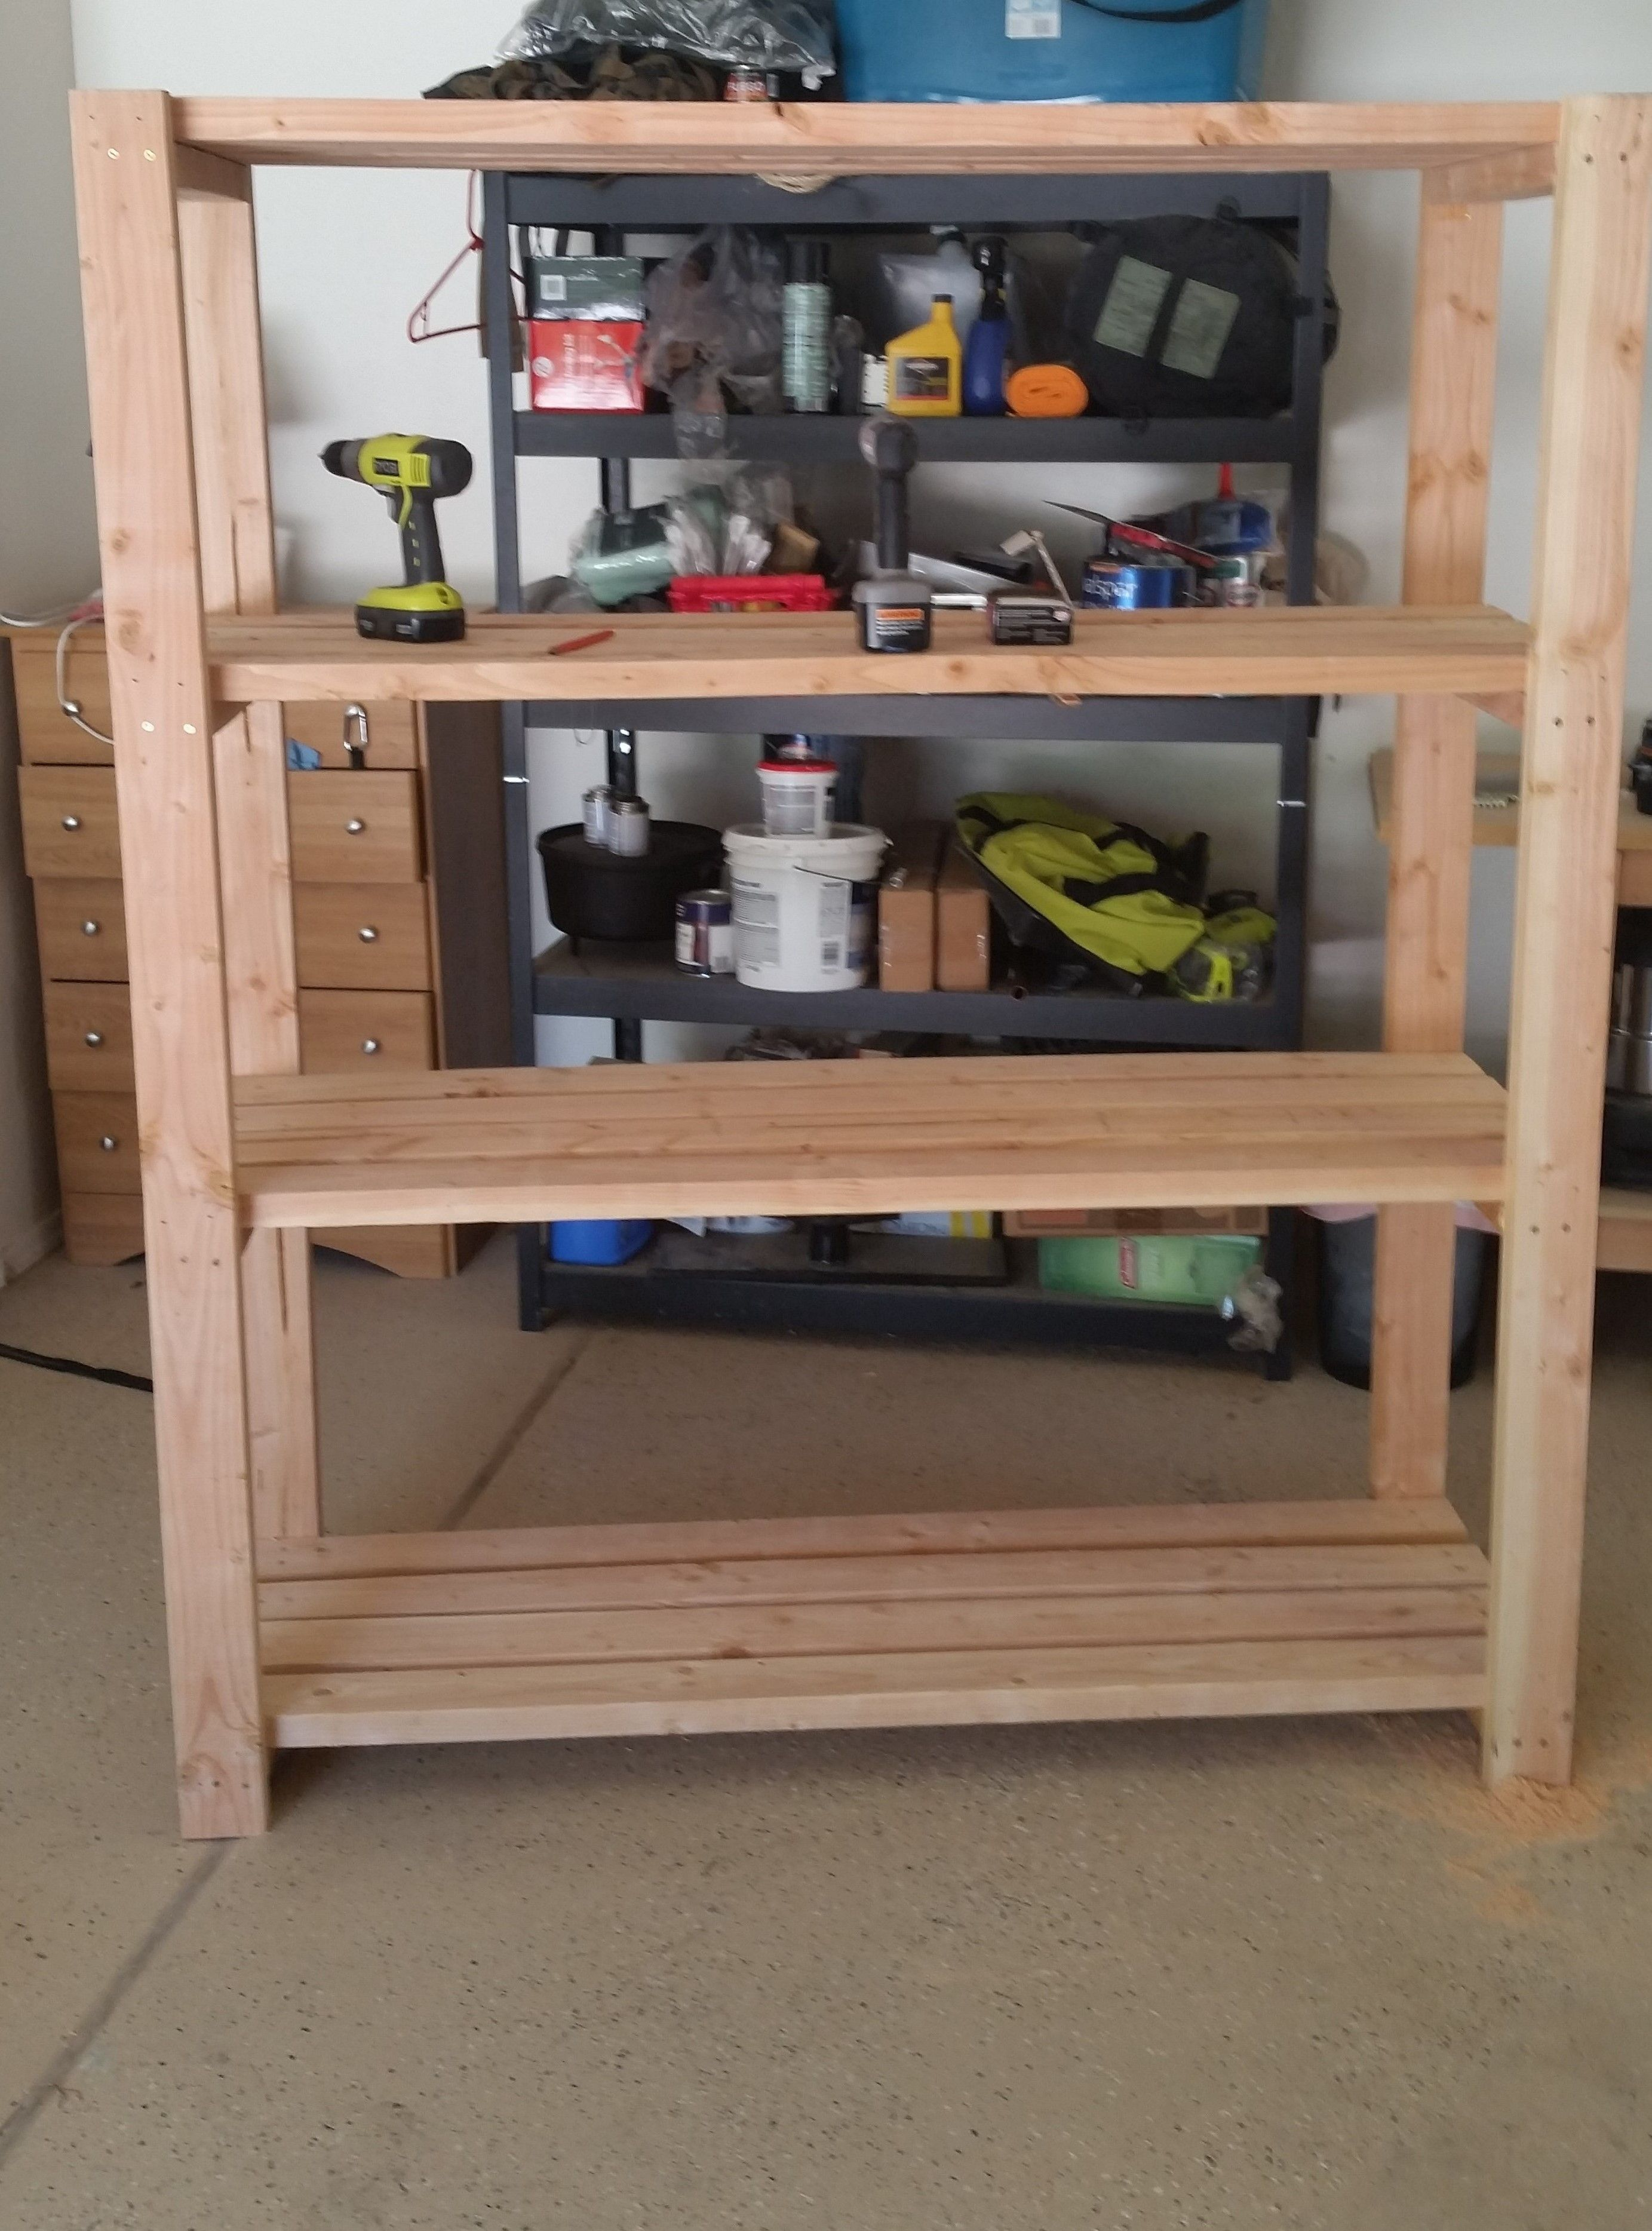 2x4 garage shelves restaurant interior design drawing 2x4 garage shelving do it yourself home projects from ana white rh pinterest com build 2x4 garage shelves 2x4 garage shelves diy solutioingenieria Images